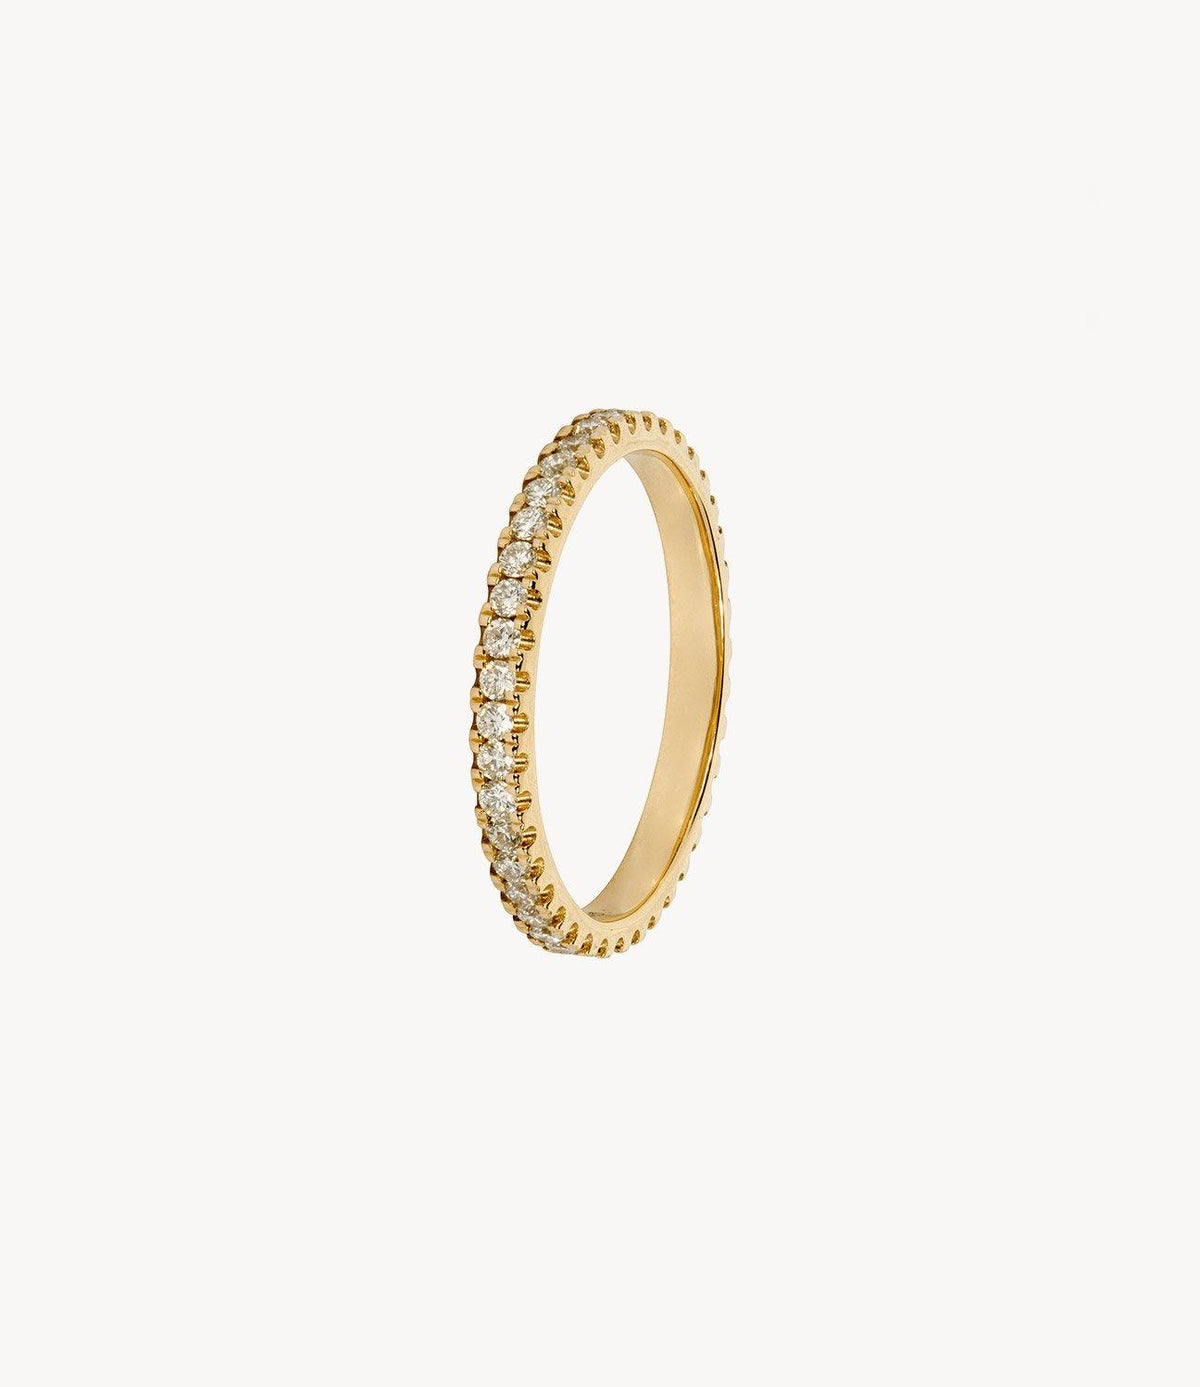 Yellow Gold, Diamond Eternity Ring